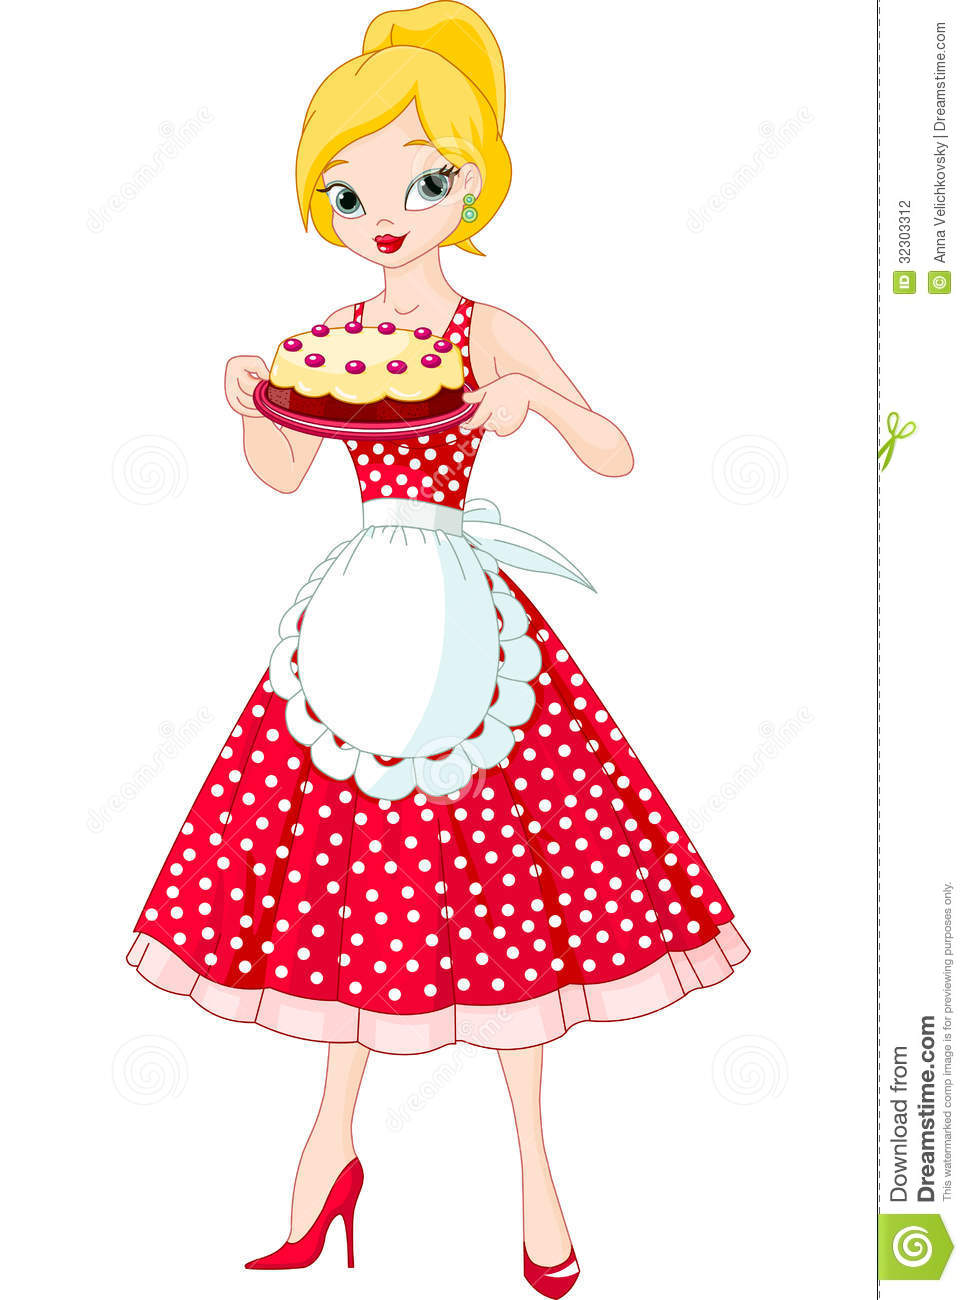 Female Art Birthday Cake Images